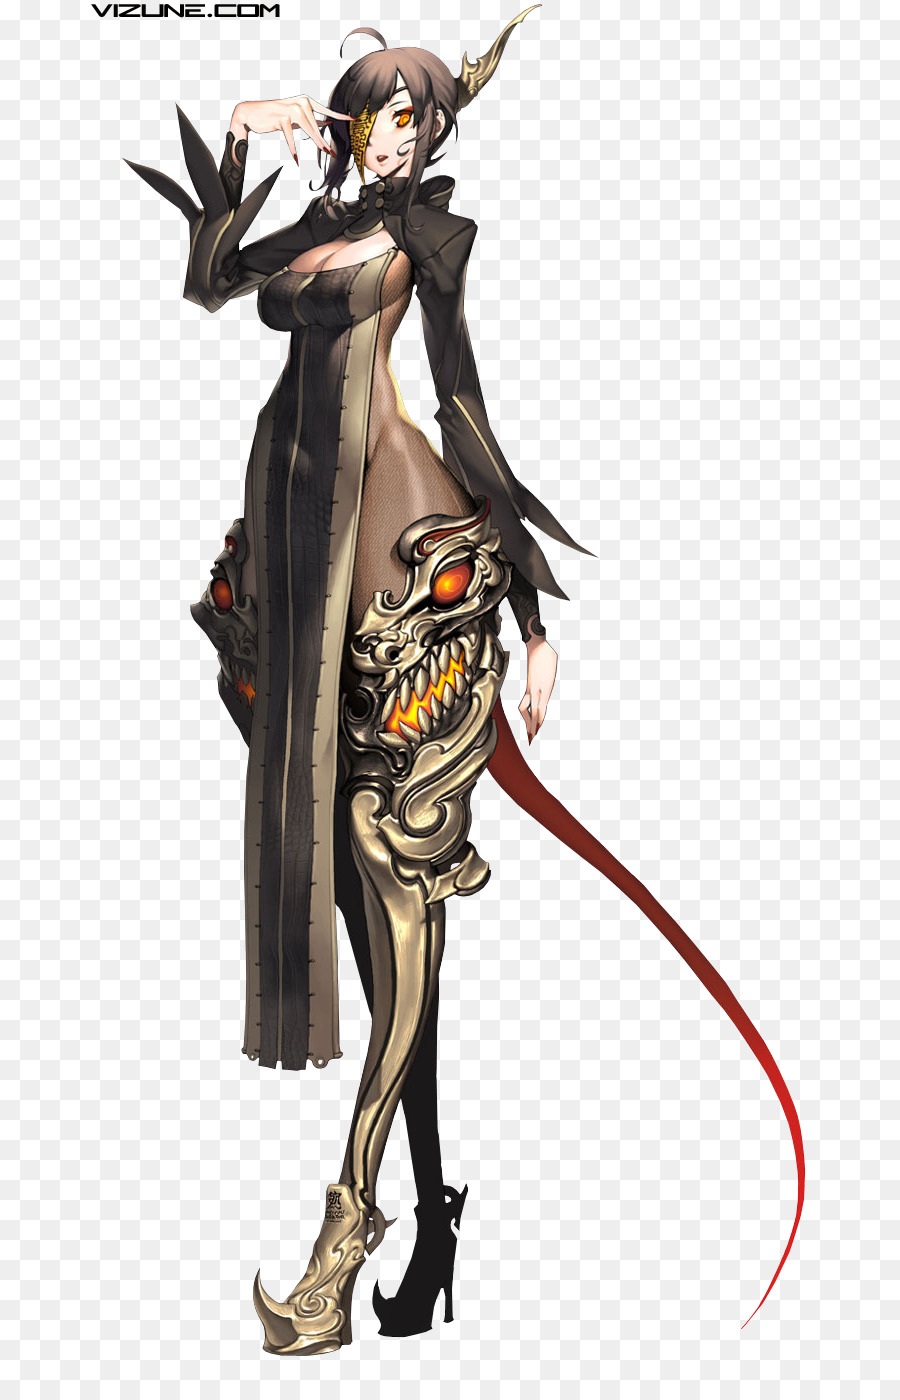 Blade and soul clipart clipart download Painting Cartoon png download - 742*1400 - Free Transparent Blade ... clipart download